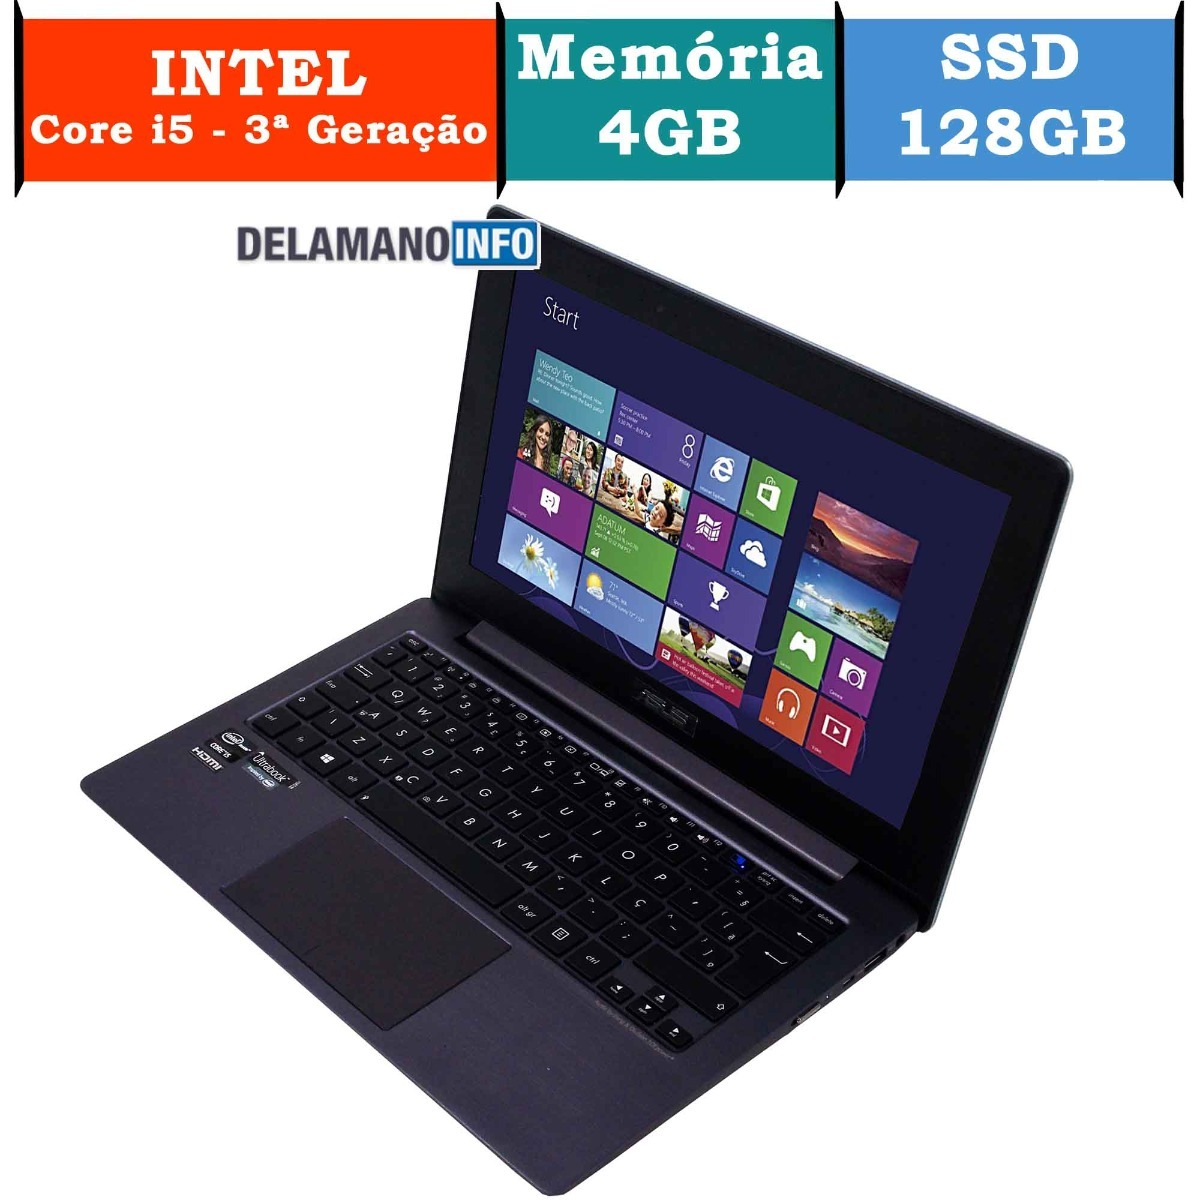 ASUS TAICHI 21 INTEL BLUETOOTH DRIVERS FOR WINDOWS DOWNLOAD